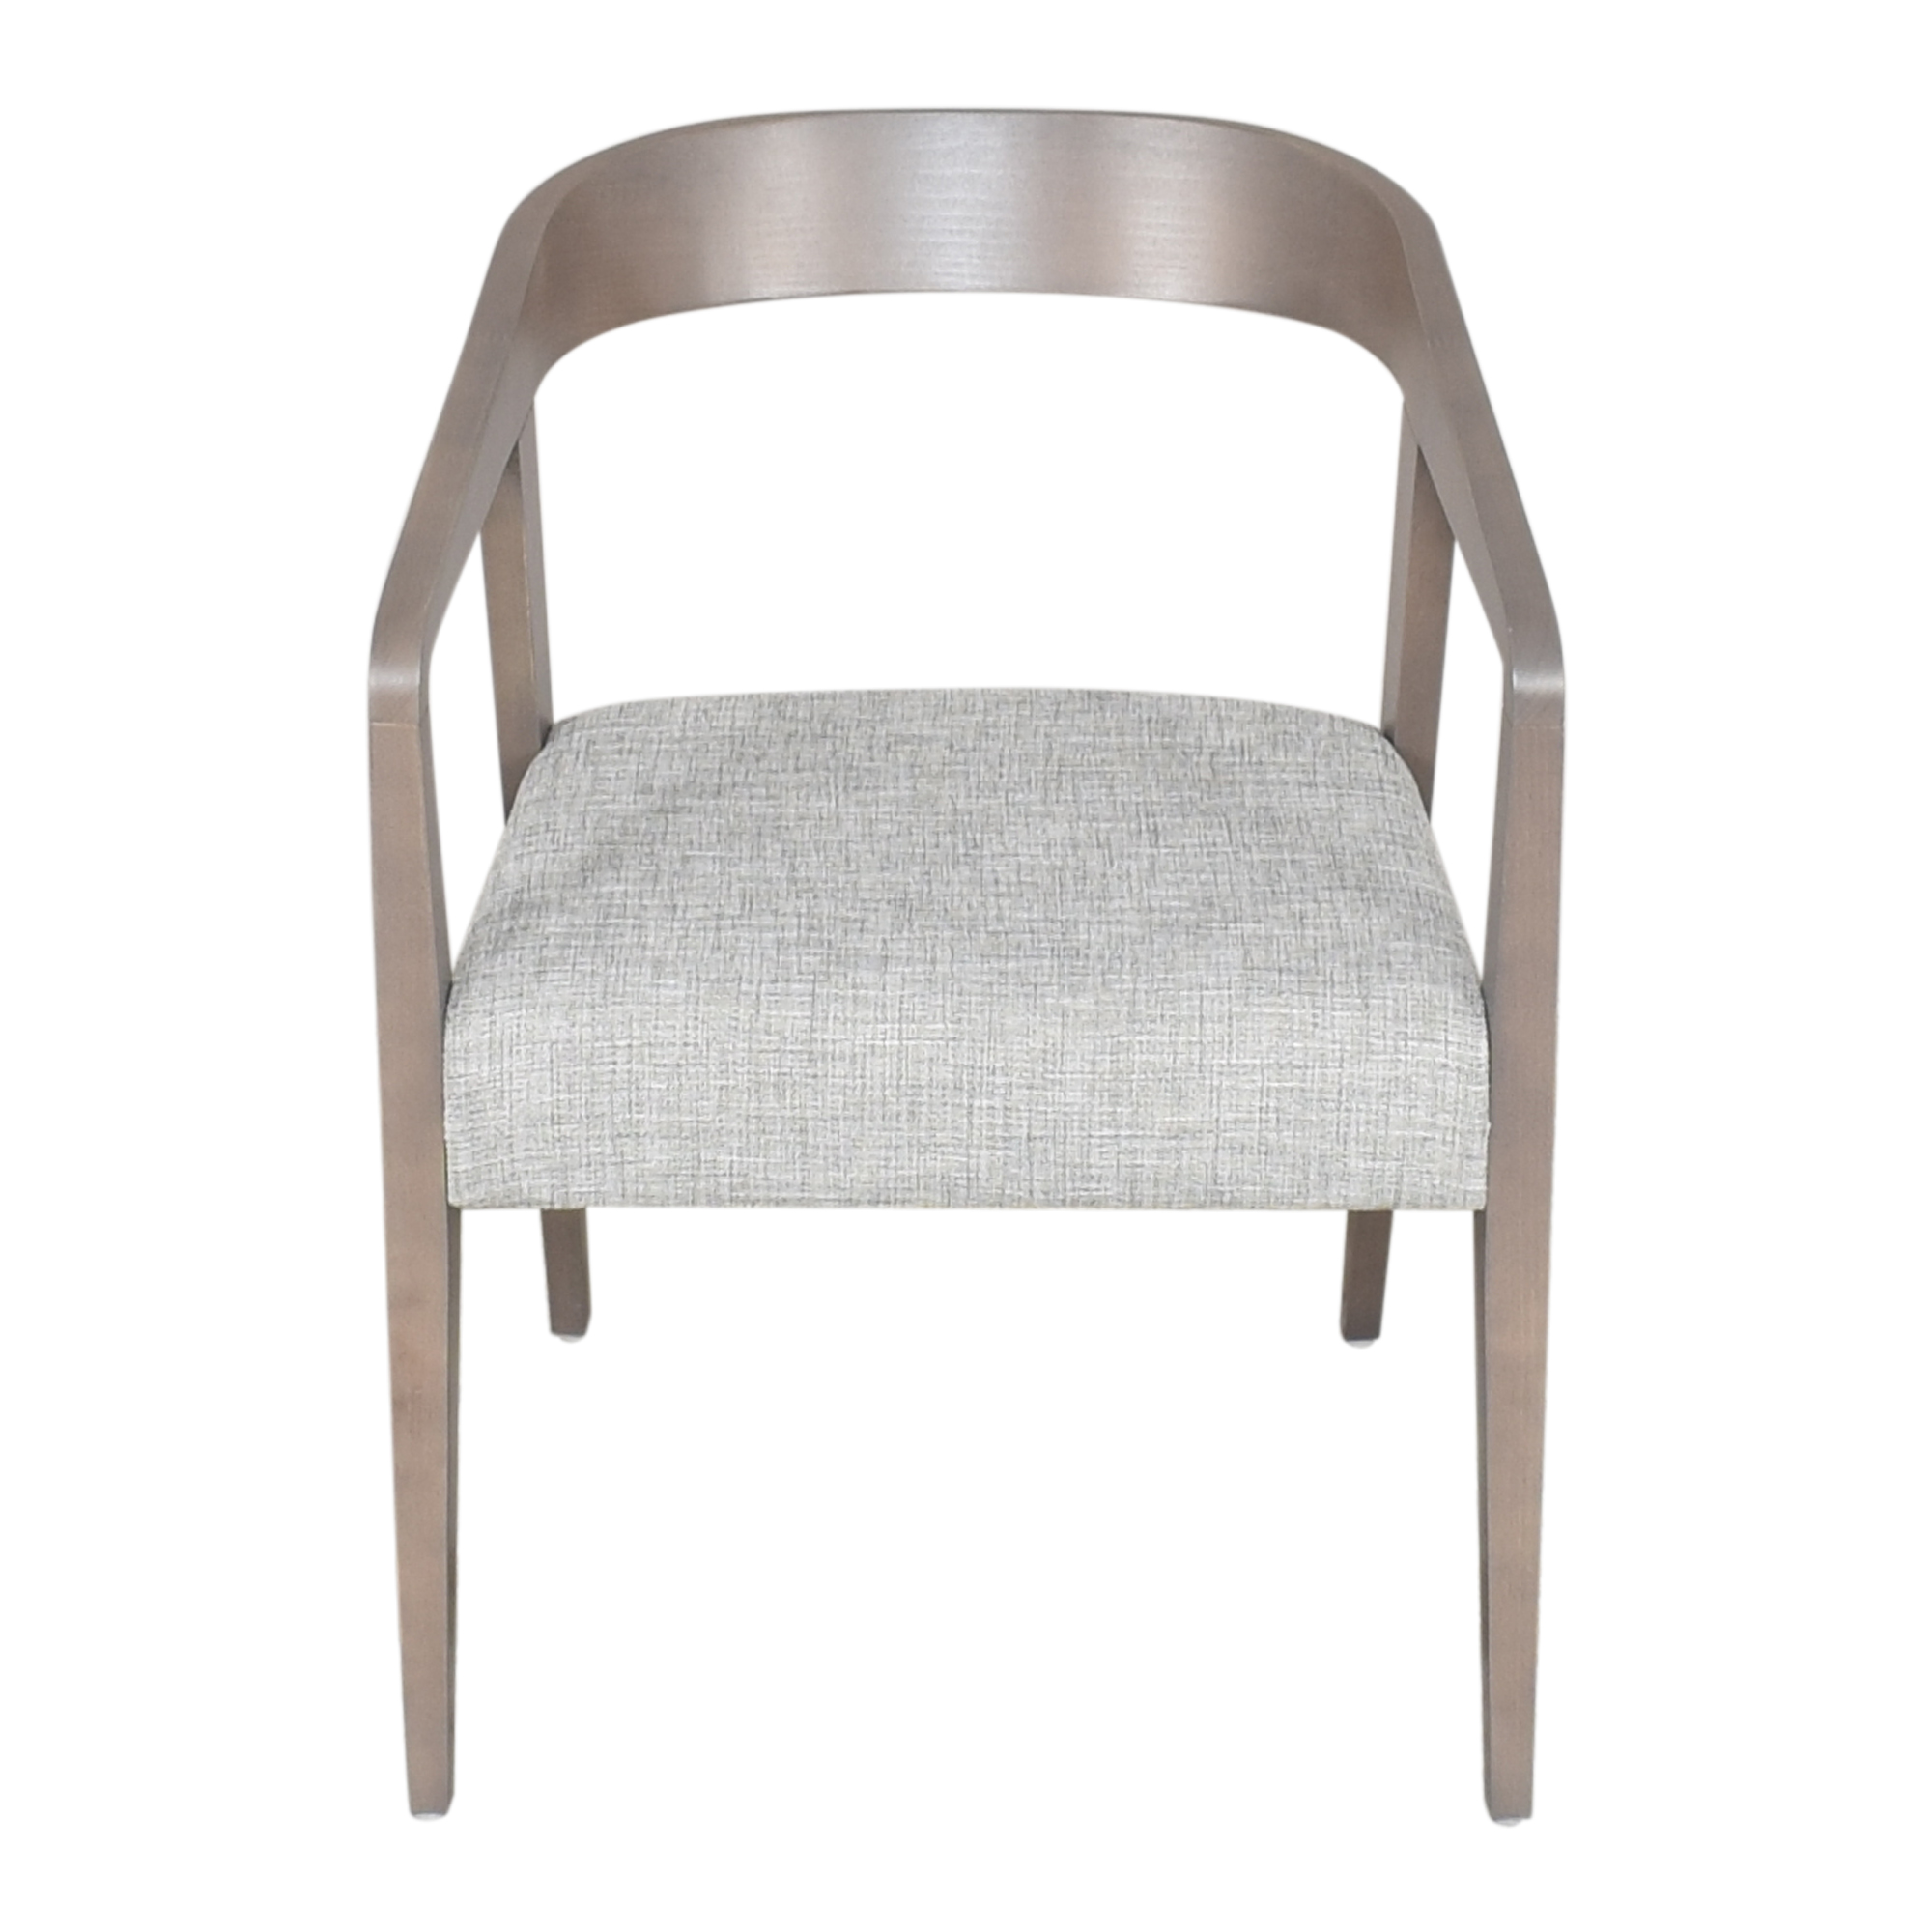 Global Furniture Group Global Furniture Group Chap Round Back Upholstered Armchair second hand